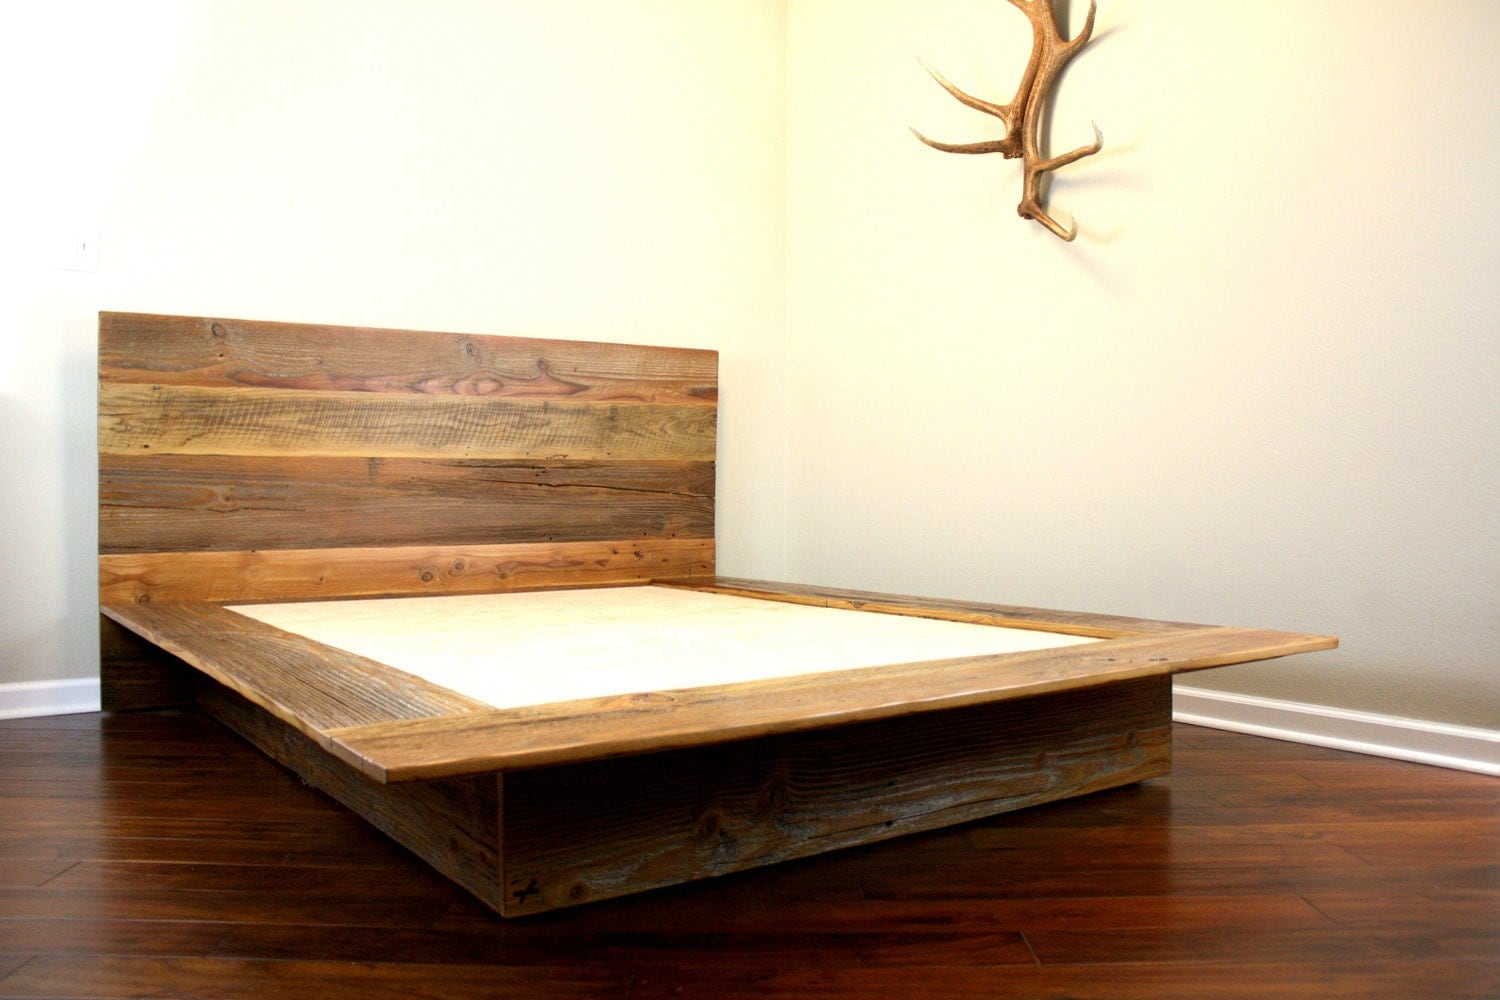 Reclaimed Wood Platform Bed // Rustic Modern Bed by weareMFEO